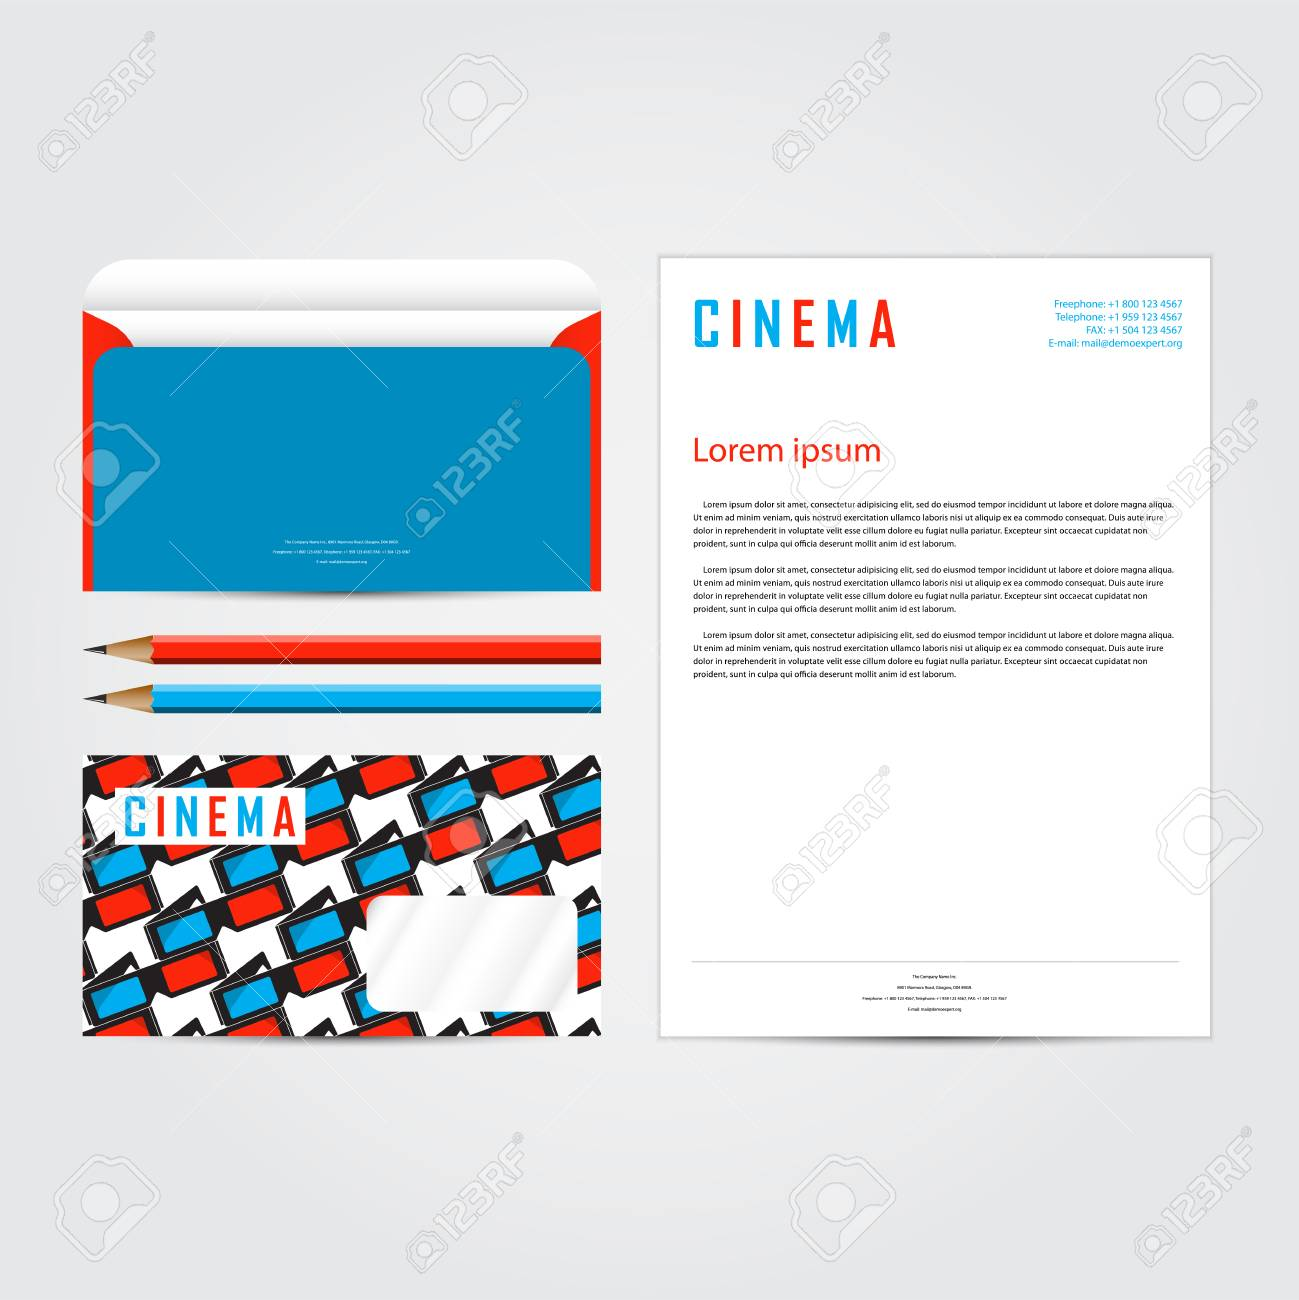 Cinema 3d corporate concept identity template set business cinema 3d corporate concept identity template set business stationery mock up branding design spiritdancerdesigns